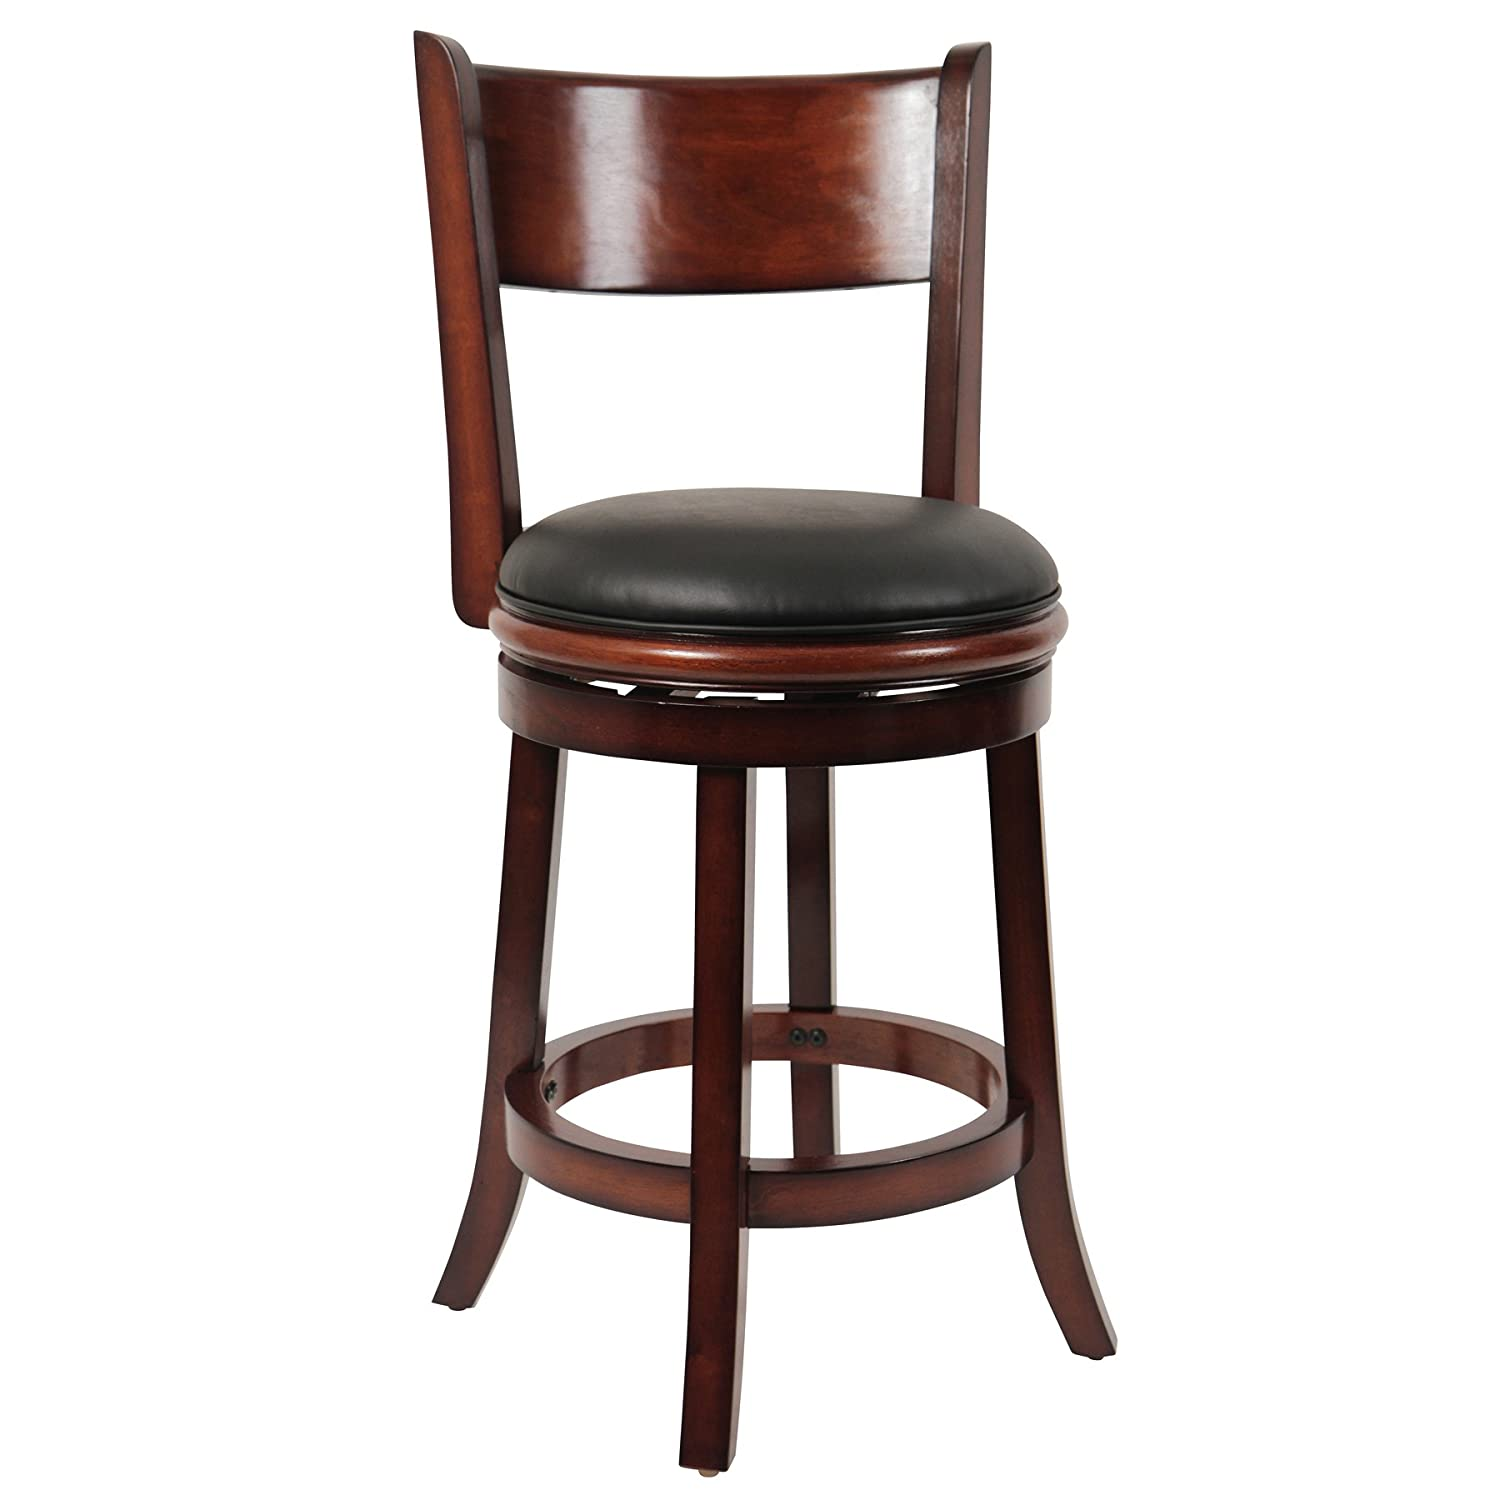 Boraam 45724 Florence Counter Height Swivel Stool, 24-Inch, Distressed Black